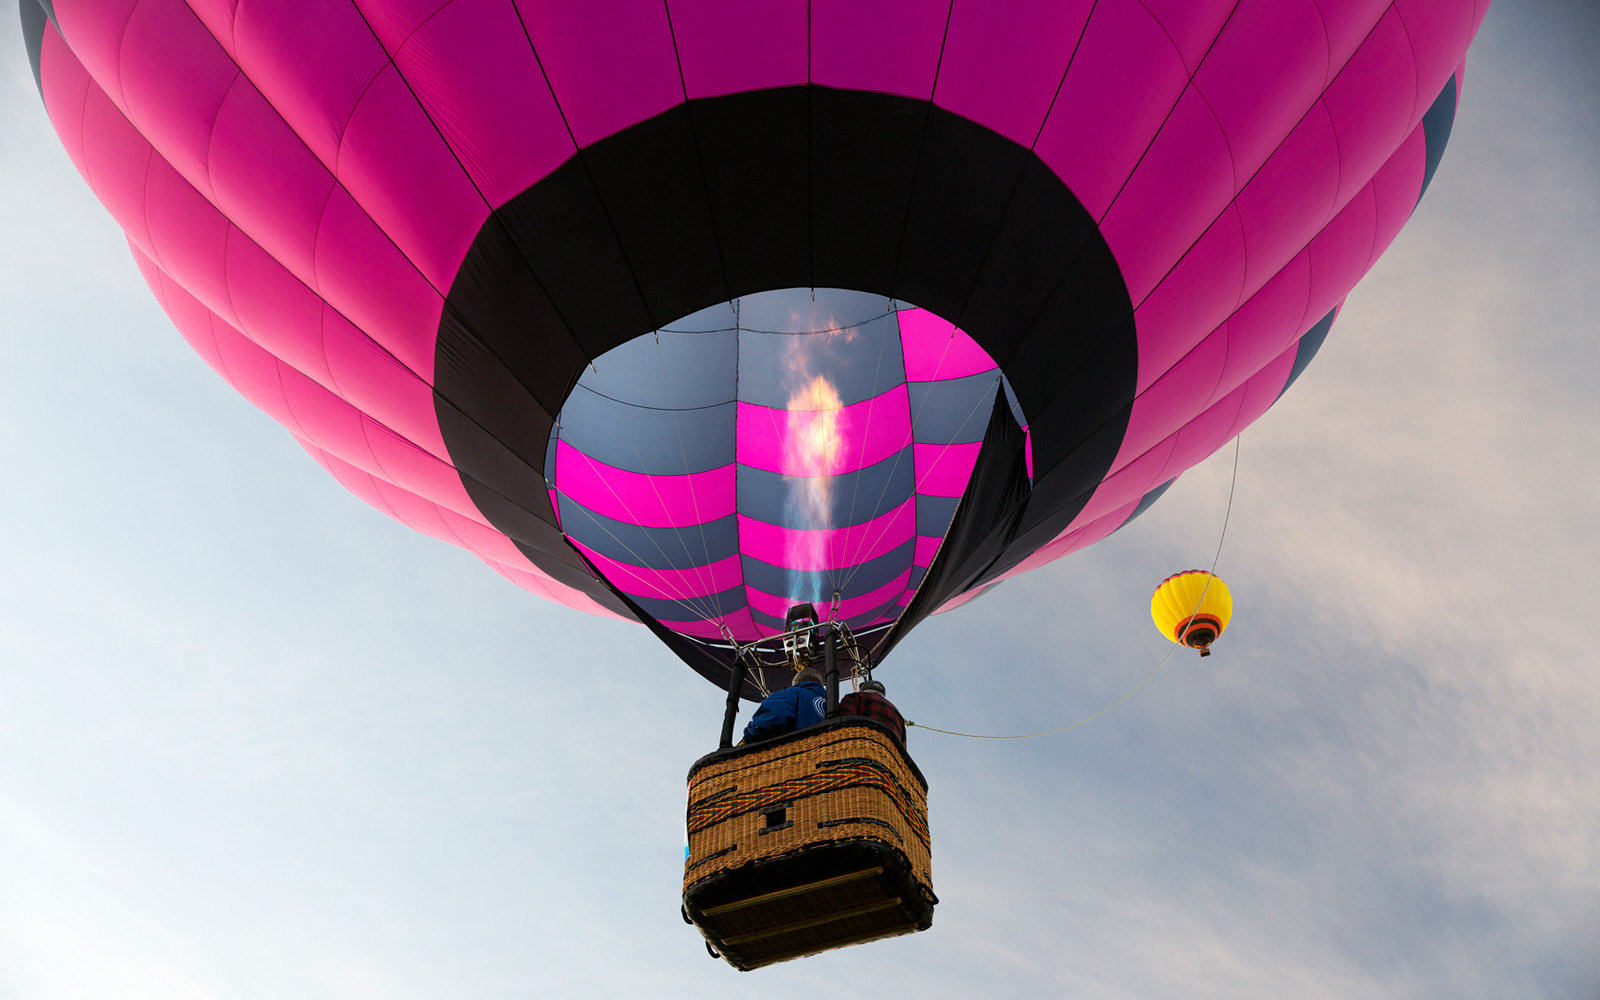 Taking flight at the Albuquerque International Balloon Fiesta